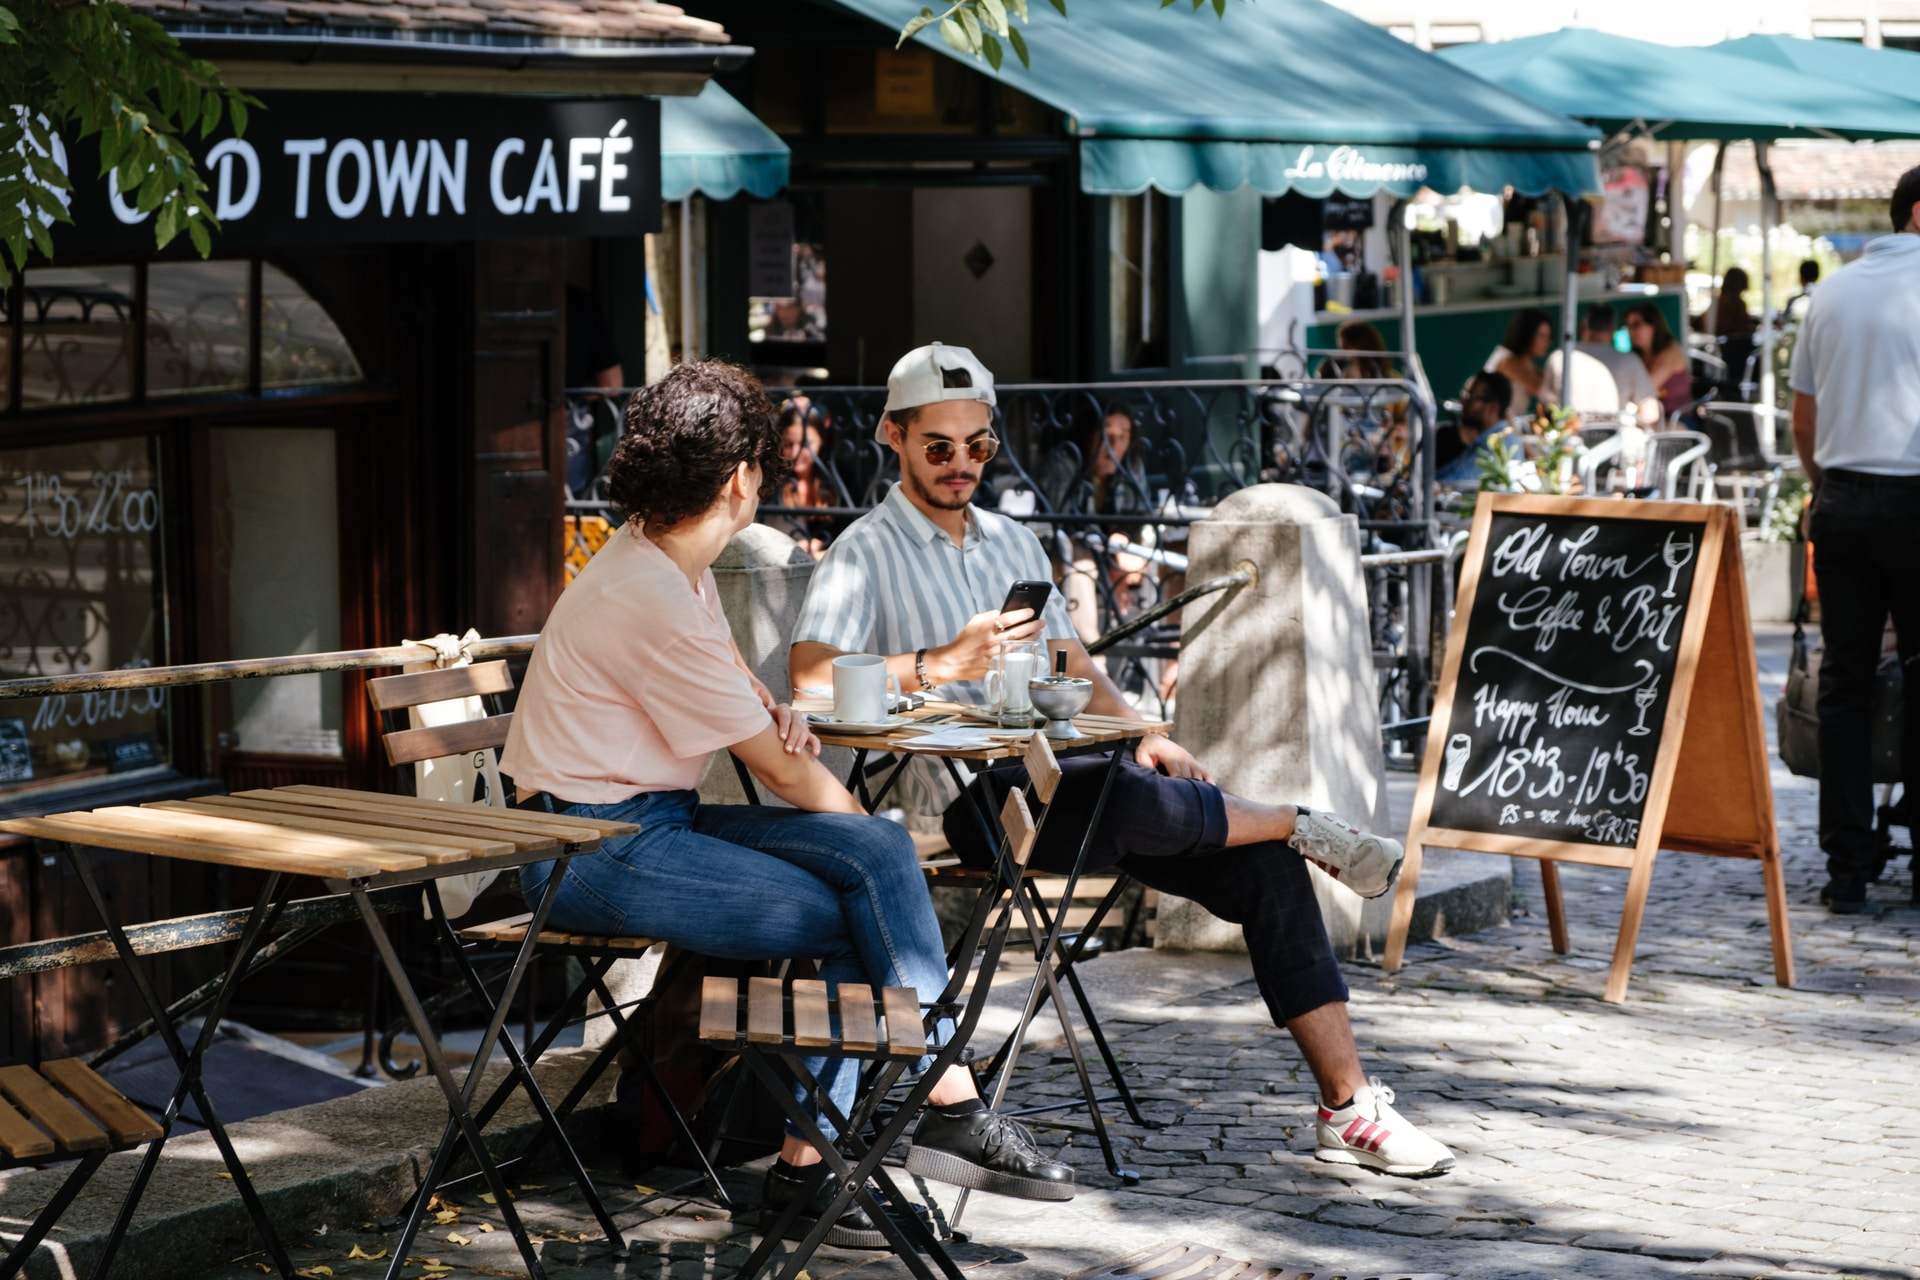 man and woman sitting in front of folding table in front of cafe with green awnings